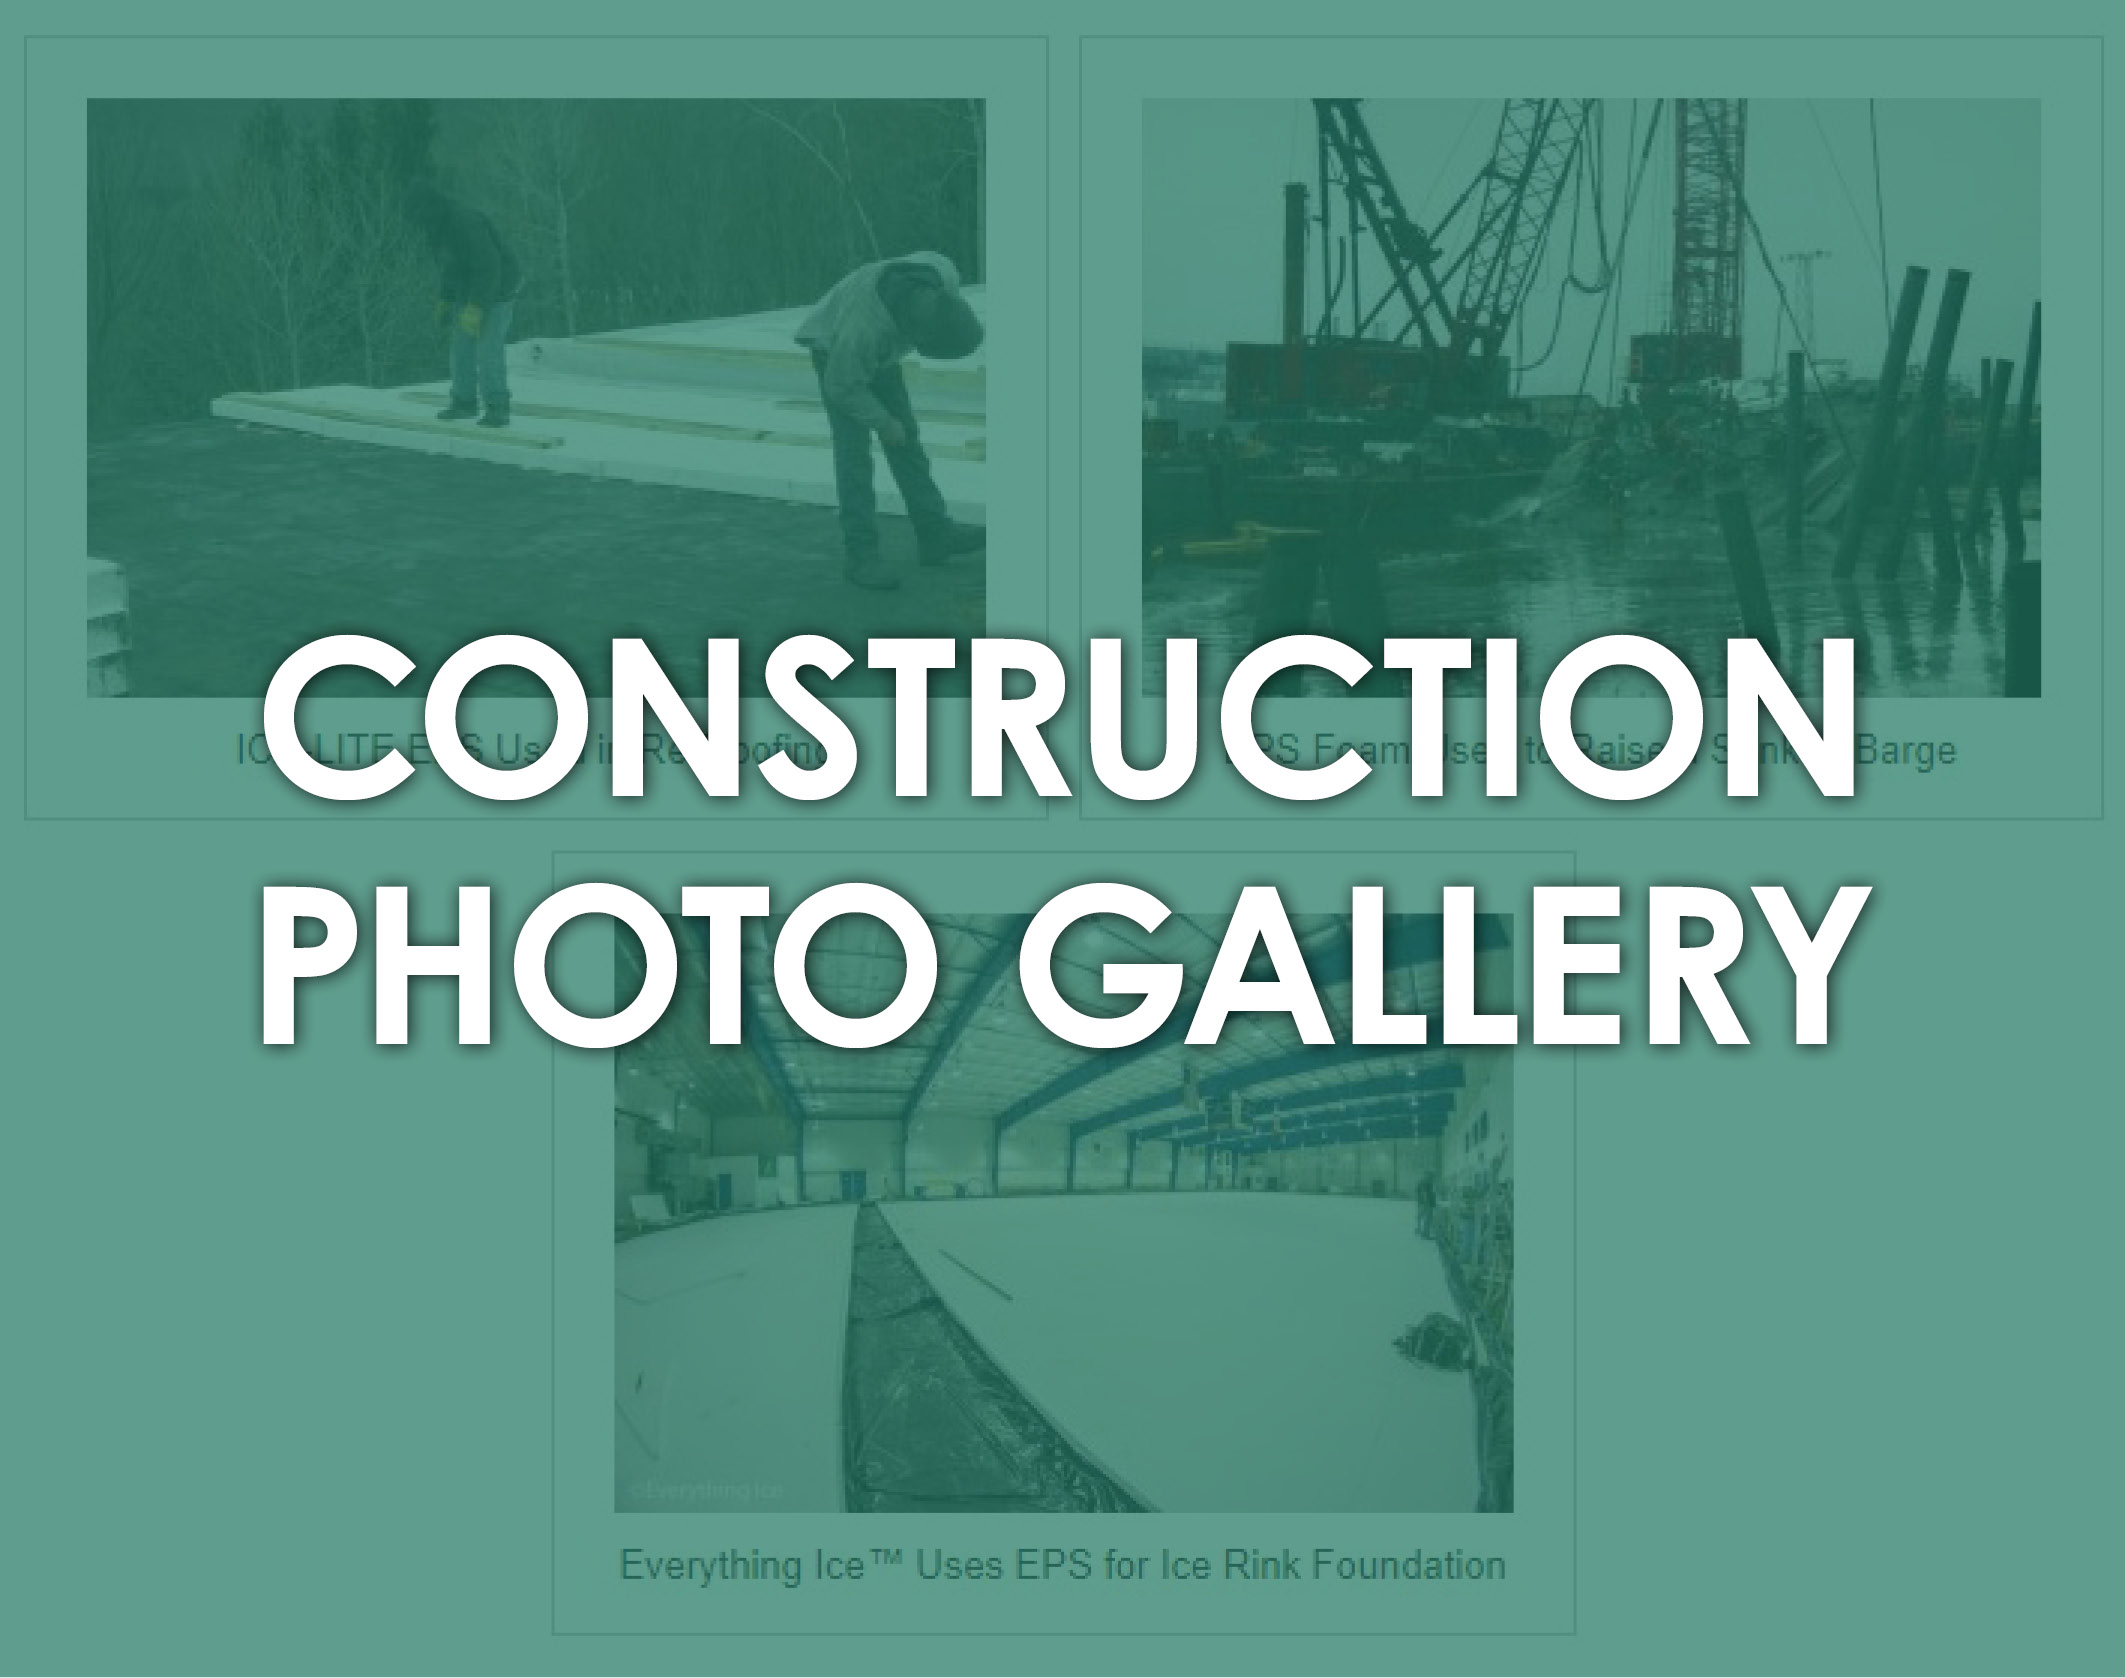 Construction Photo Gallery by ICA